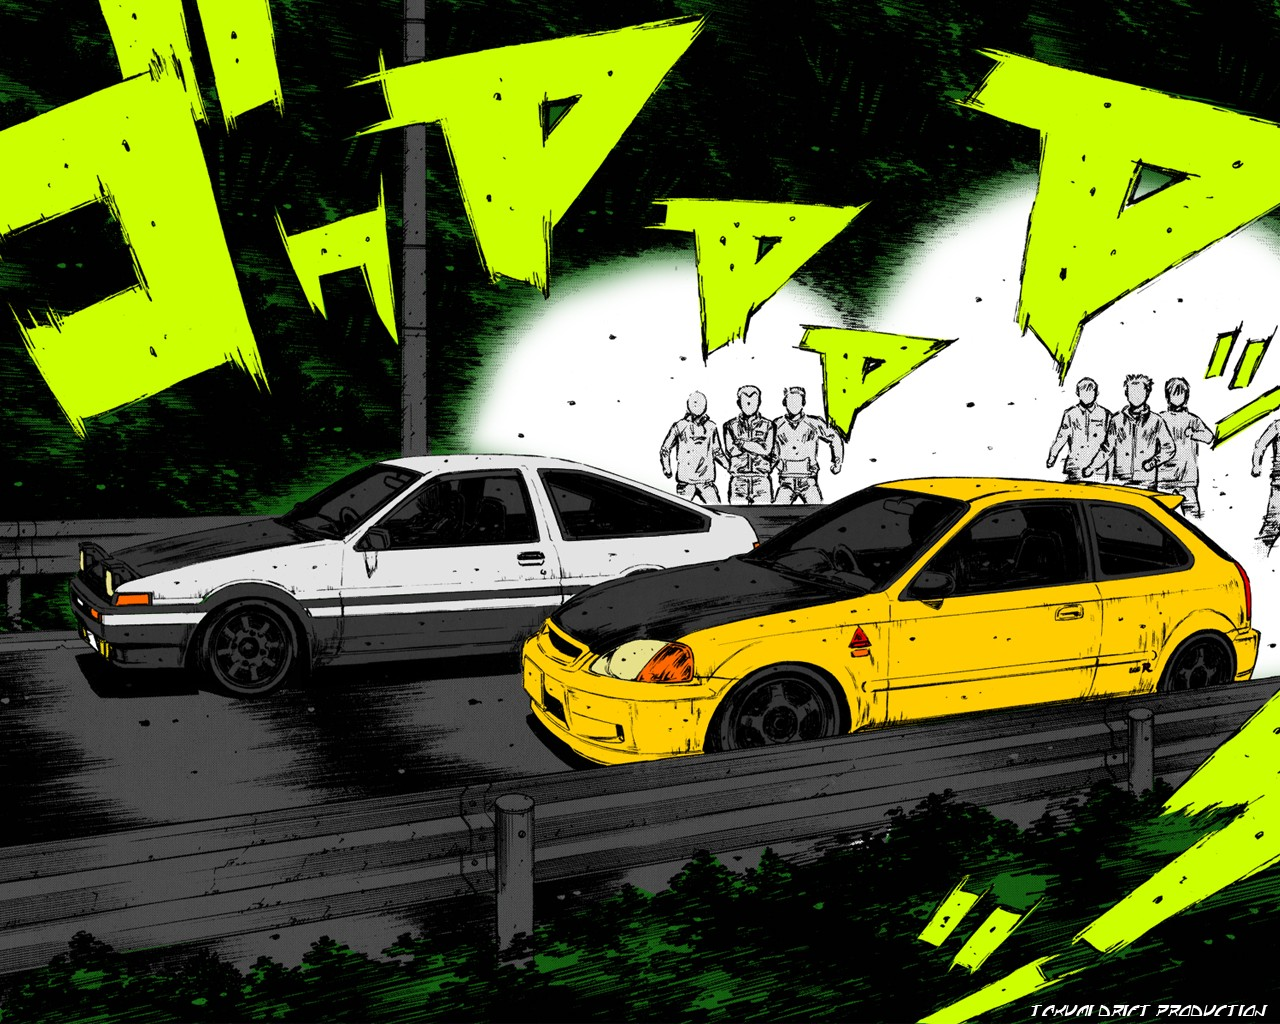 Image ae86 vs ek9 coloured manga by - Ae86 initial d wallpaper ...